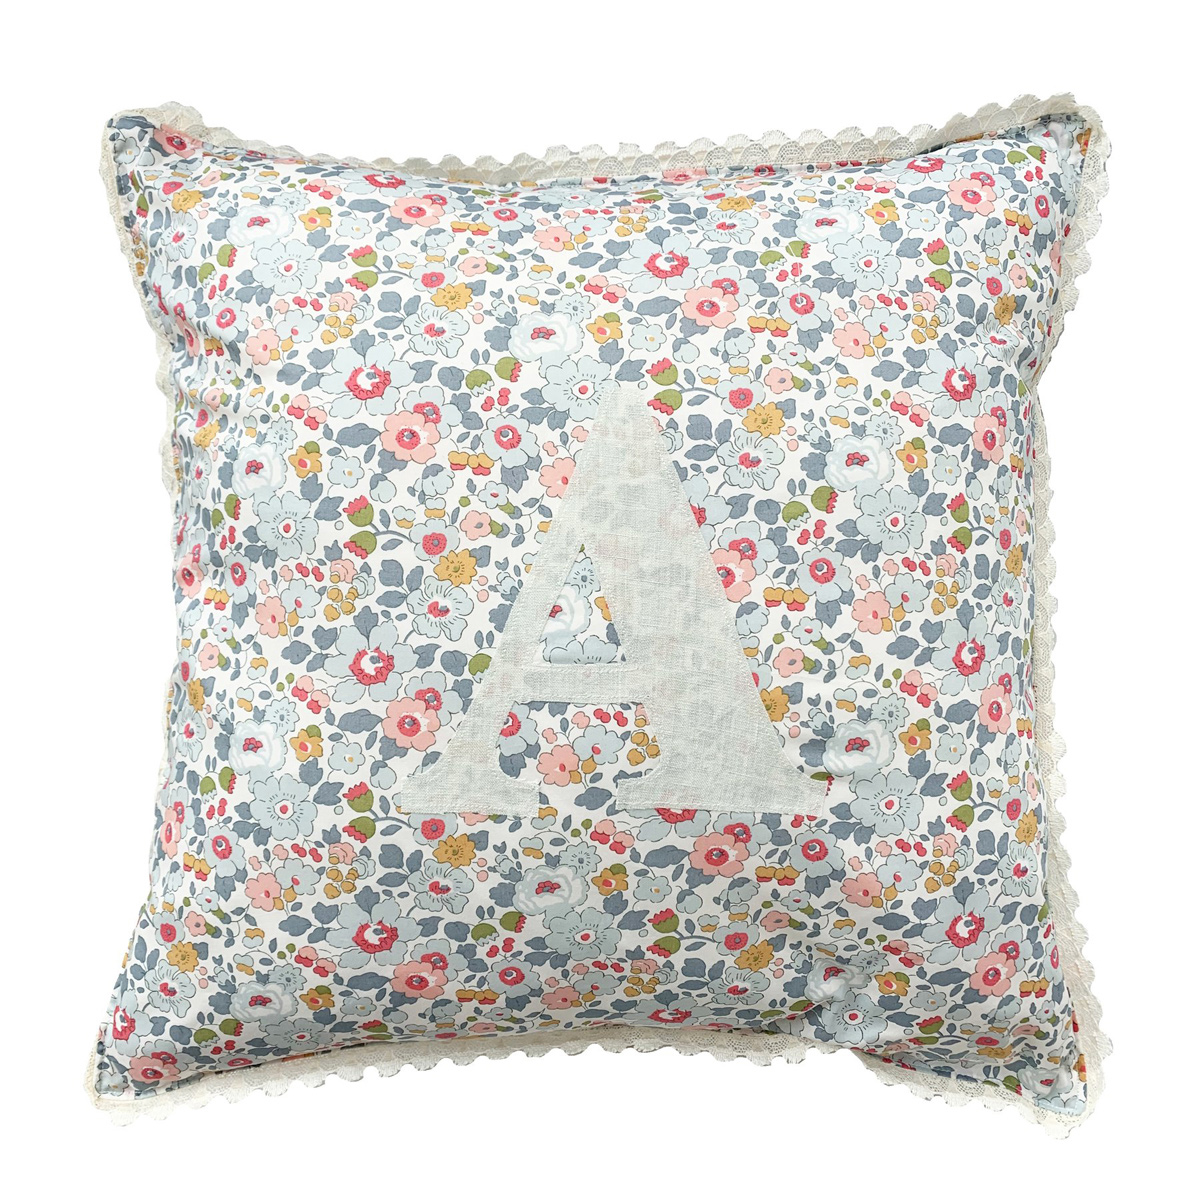 Coco & Wolf Liberty Fabric Personalized Pillow – Betsy Grey & Soft Mint Linen